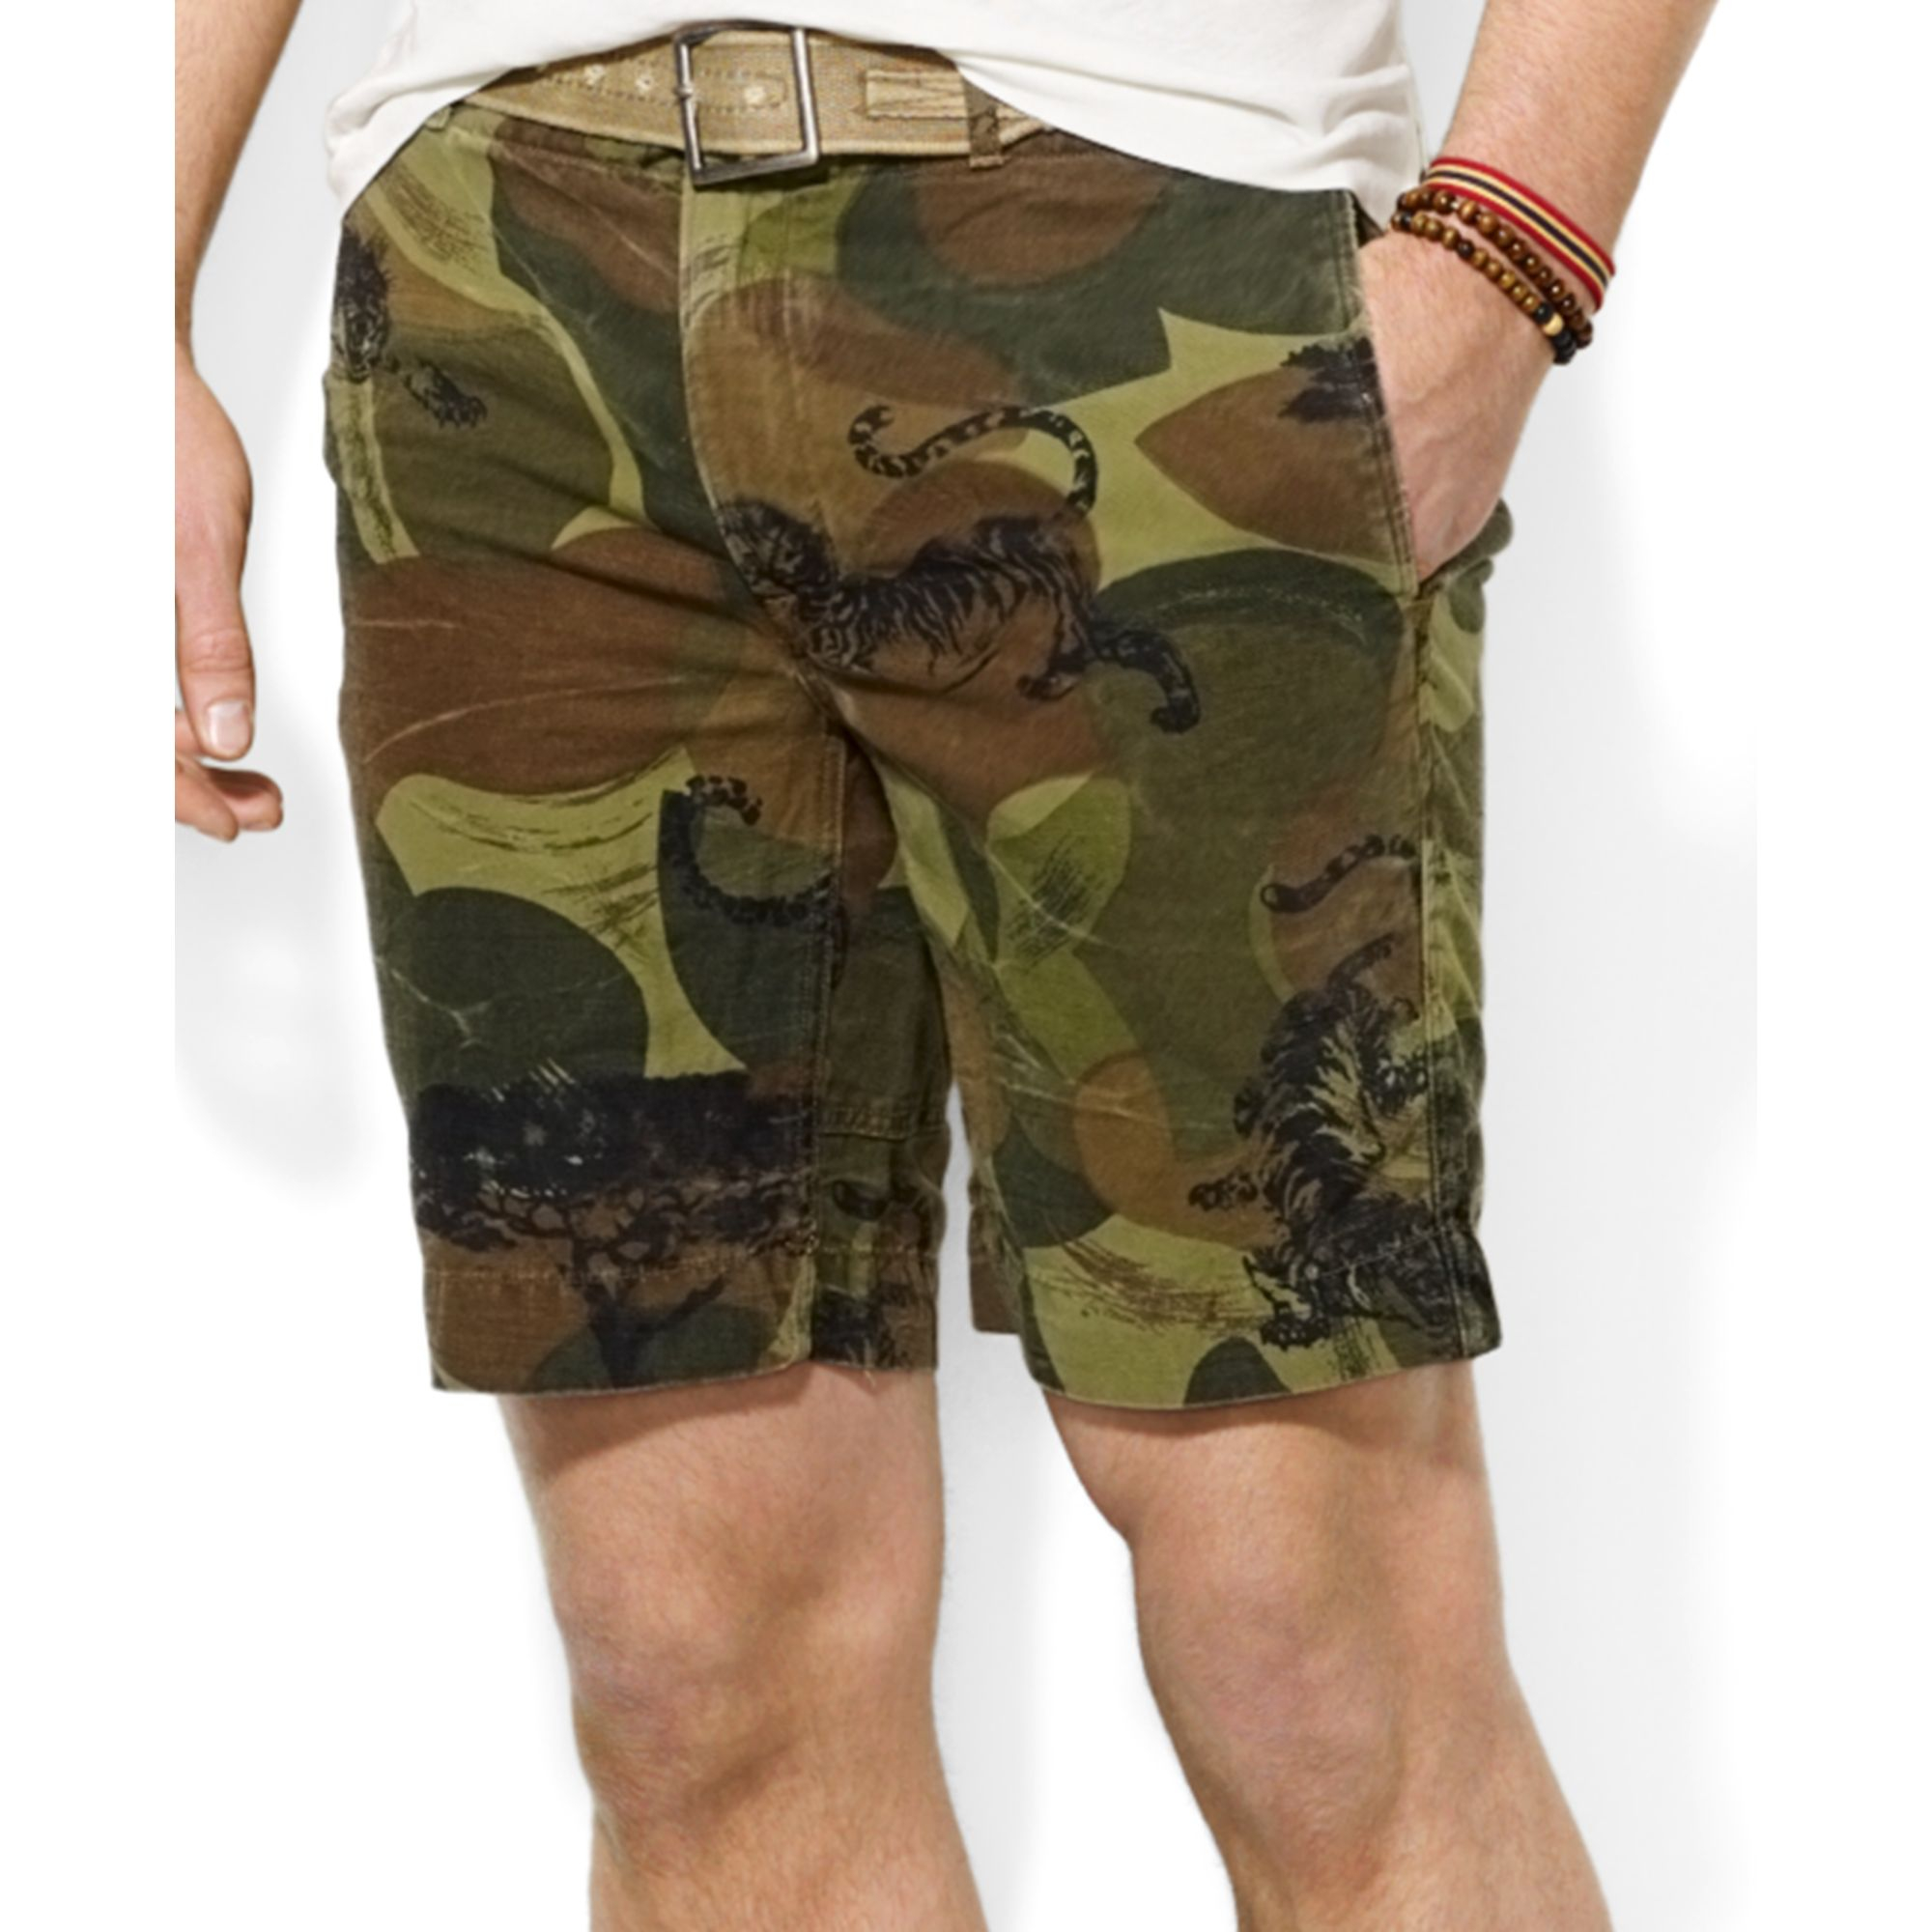 Quality Clothing, Men's Big & Tall, and Big & Tall Camo at competitive prices.